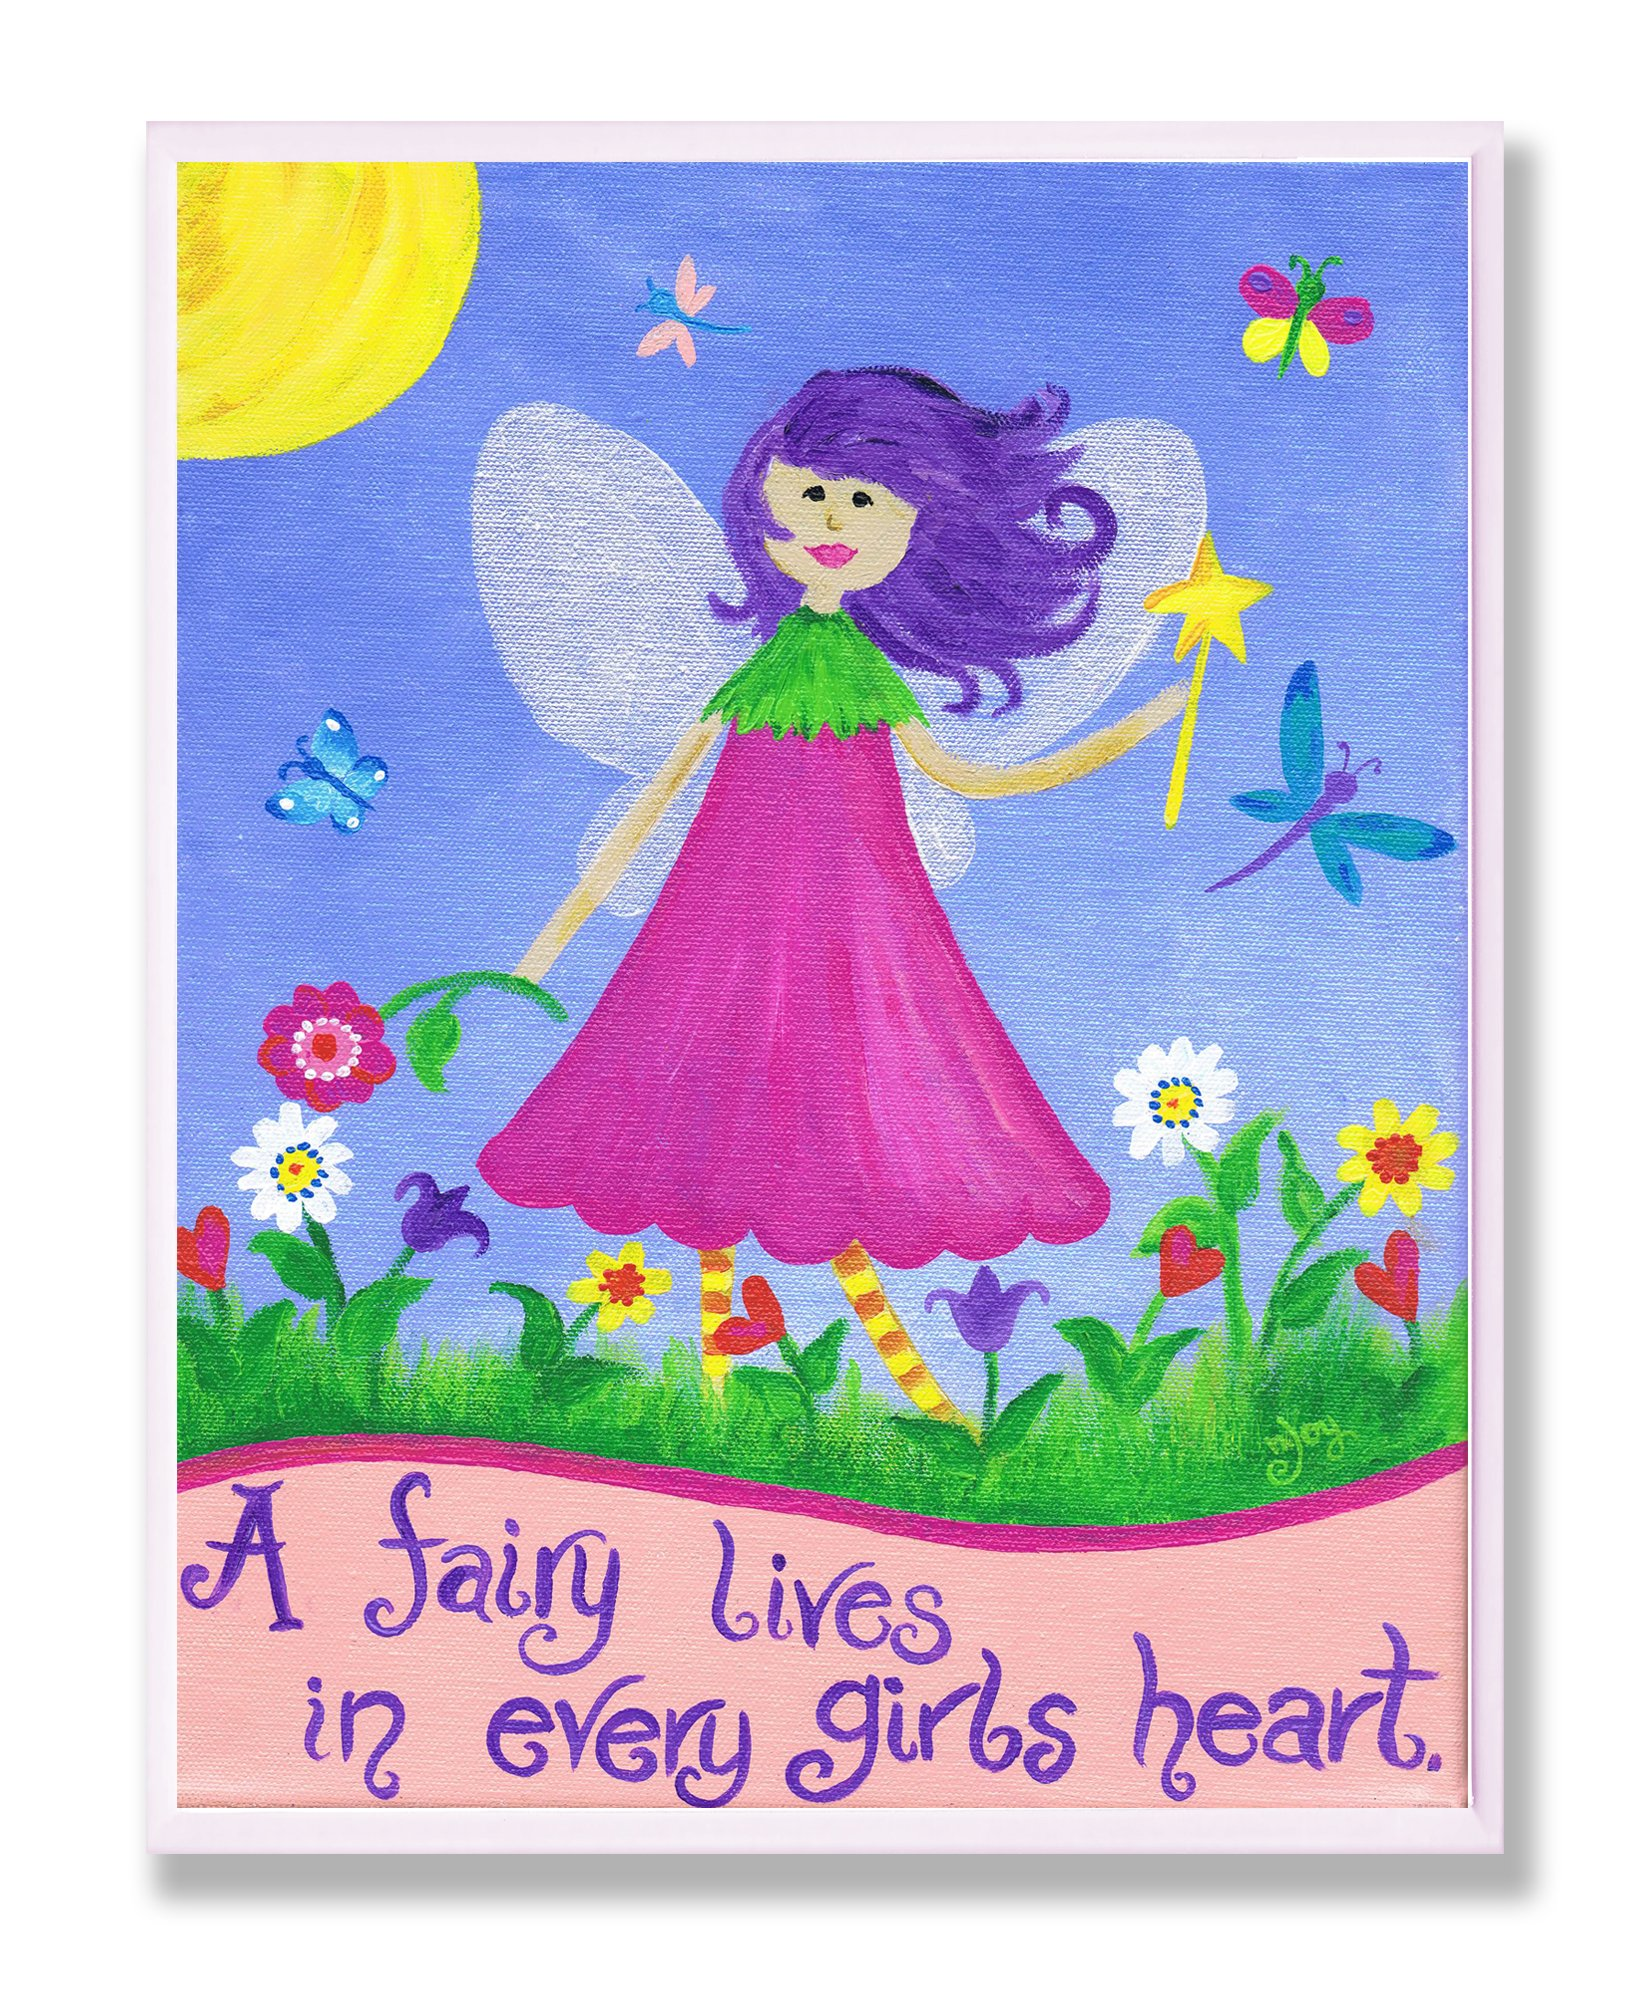 The Kids Room by Stupell A Fairy Lives In Every Girl's Heart Rectangle Wall Plaque, 11 x 0.5 x 15, Proudly Made in USA by The Kids Room by Stupell (Image #1)